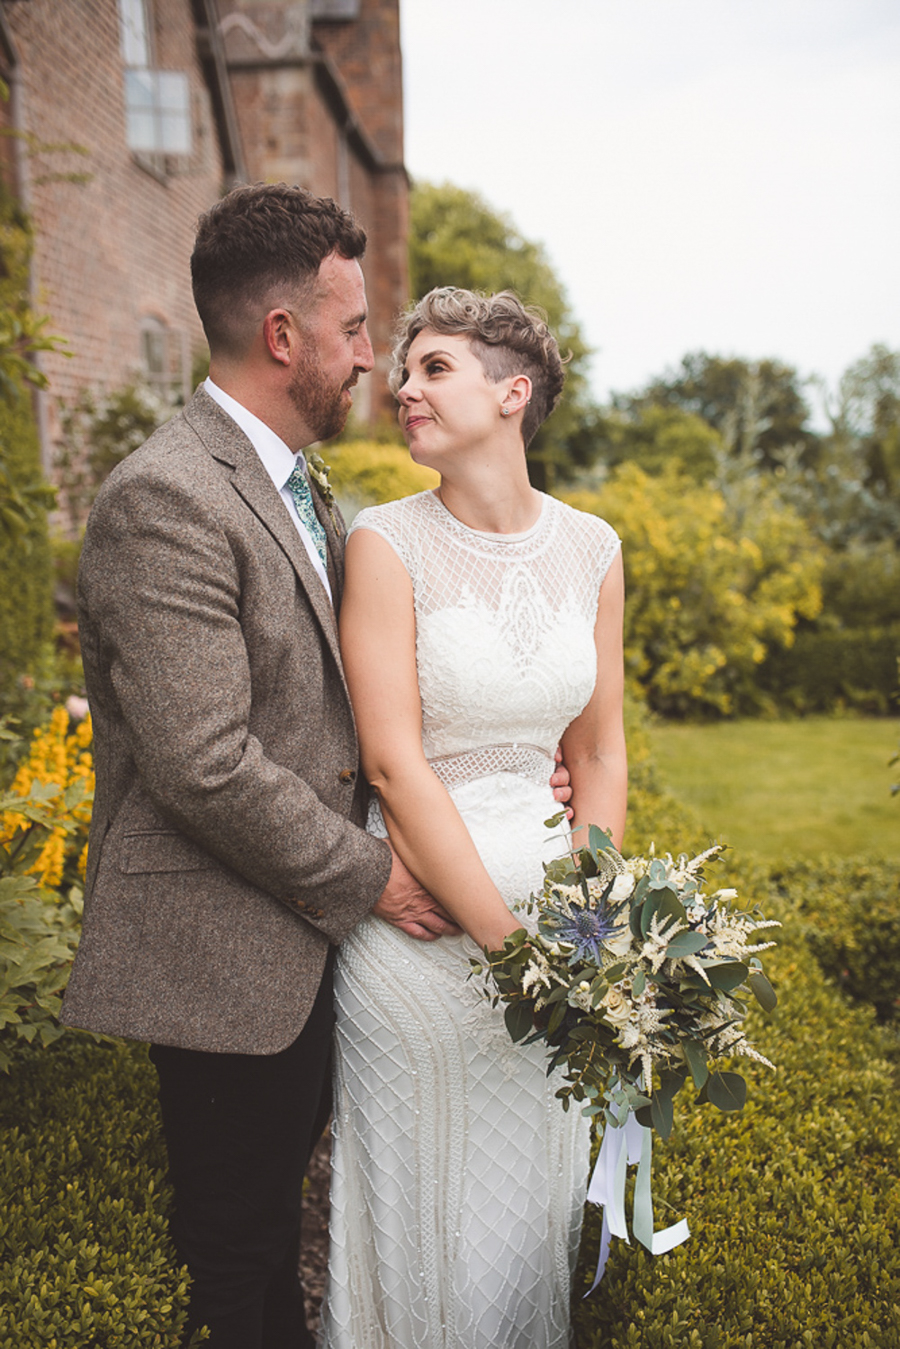 Jo & James's beautifully rustic Pimhill Barn wedding, with Brightwing Photography (47)